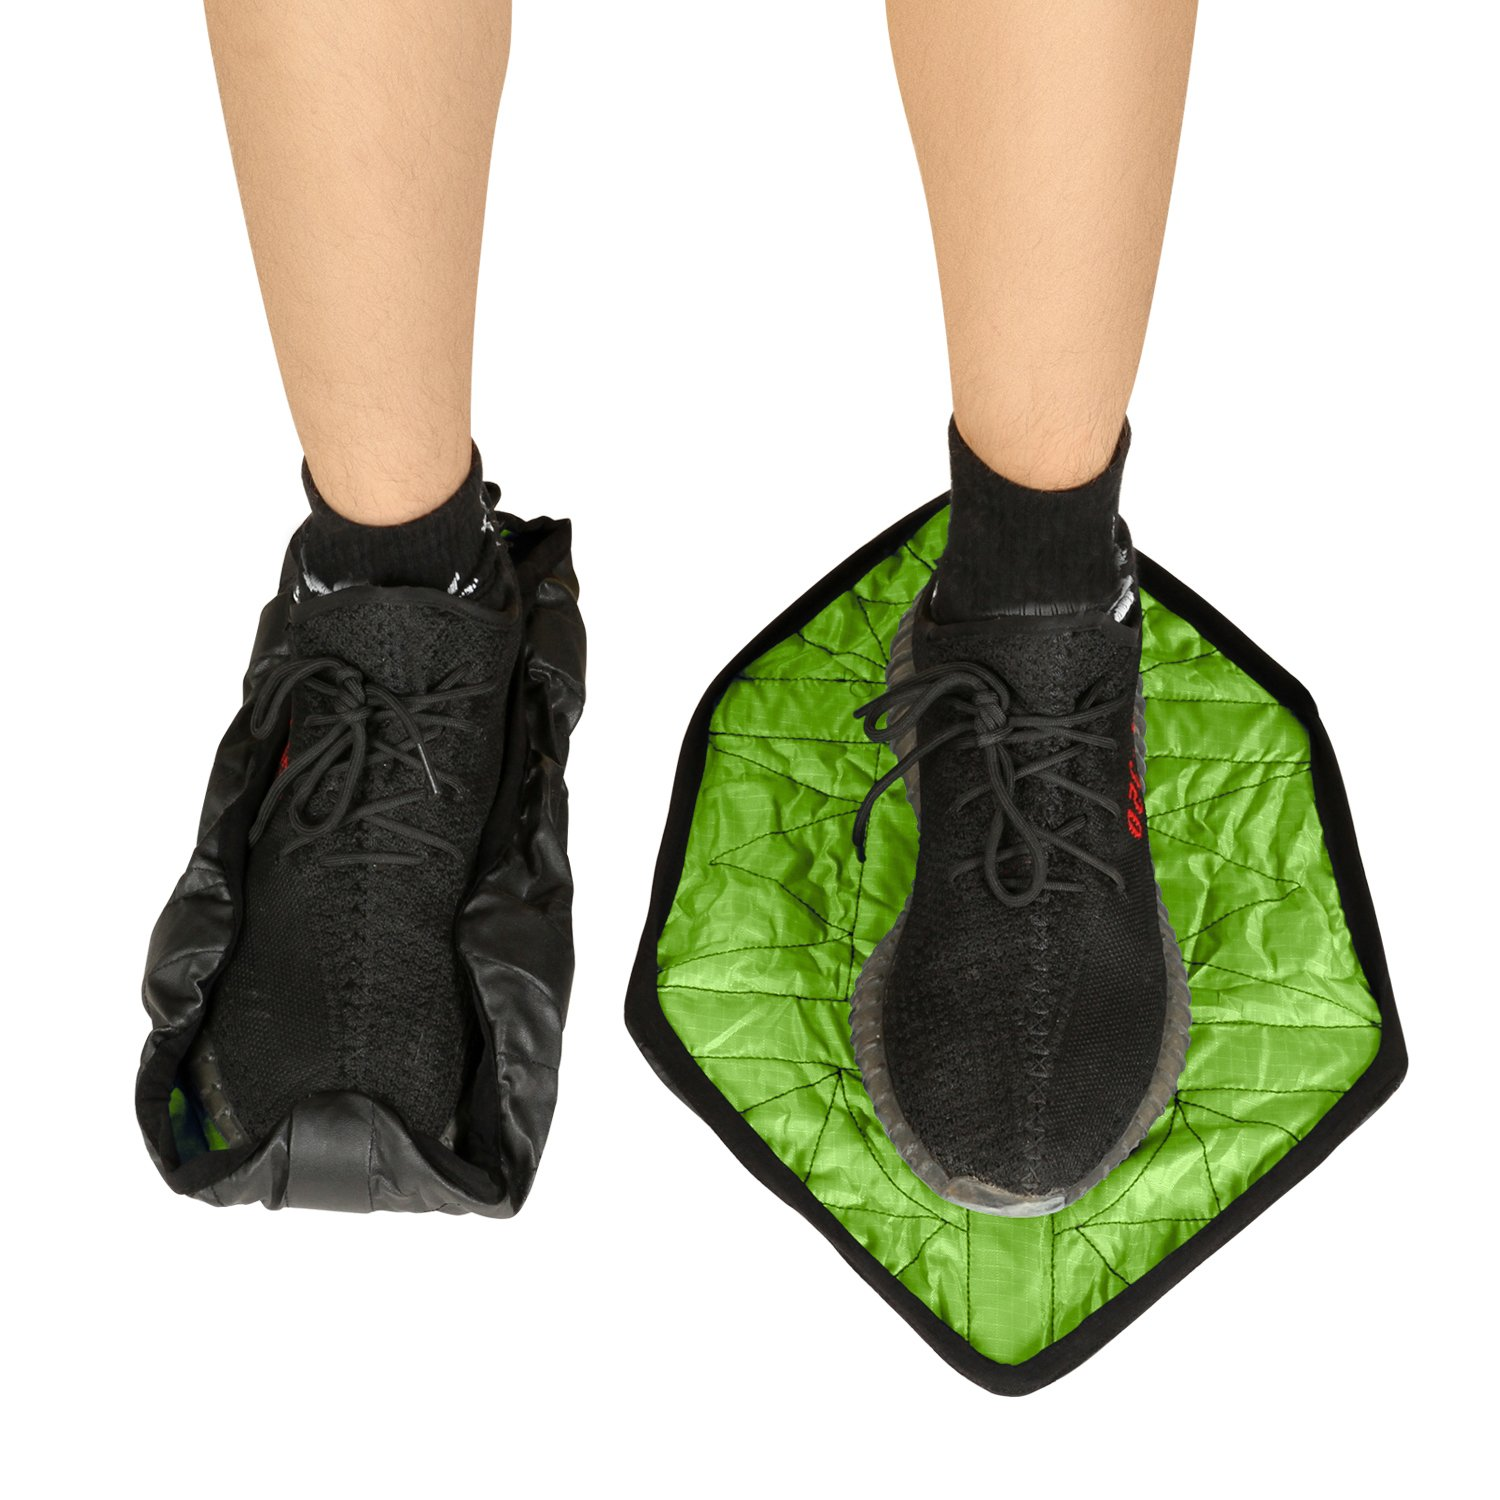 HK Shoe Covers Reusable Waterproof Automatic Boot Cover to Protect Floor Non Slip for Men Women Green Pair